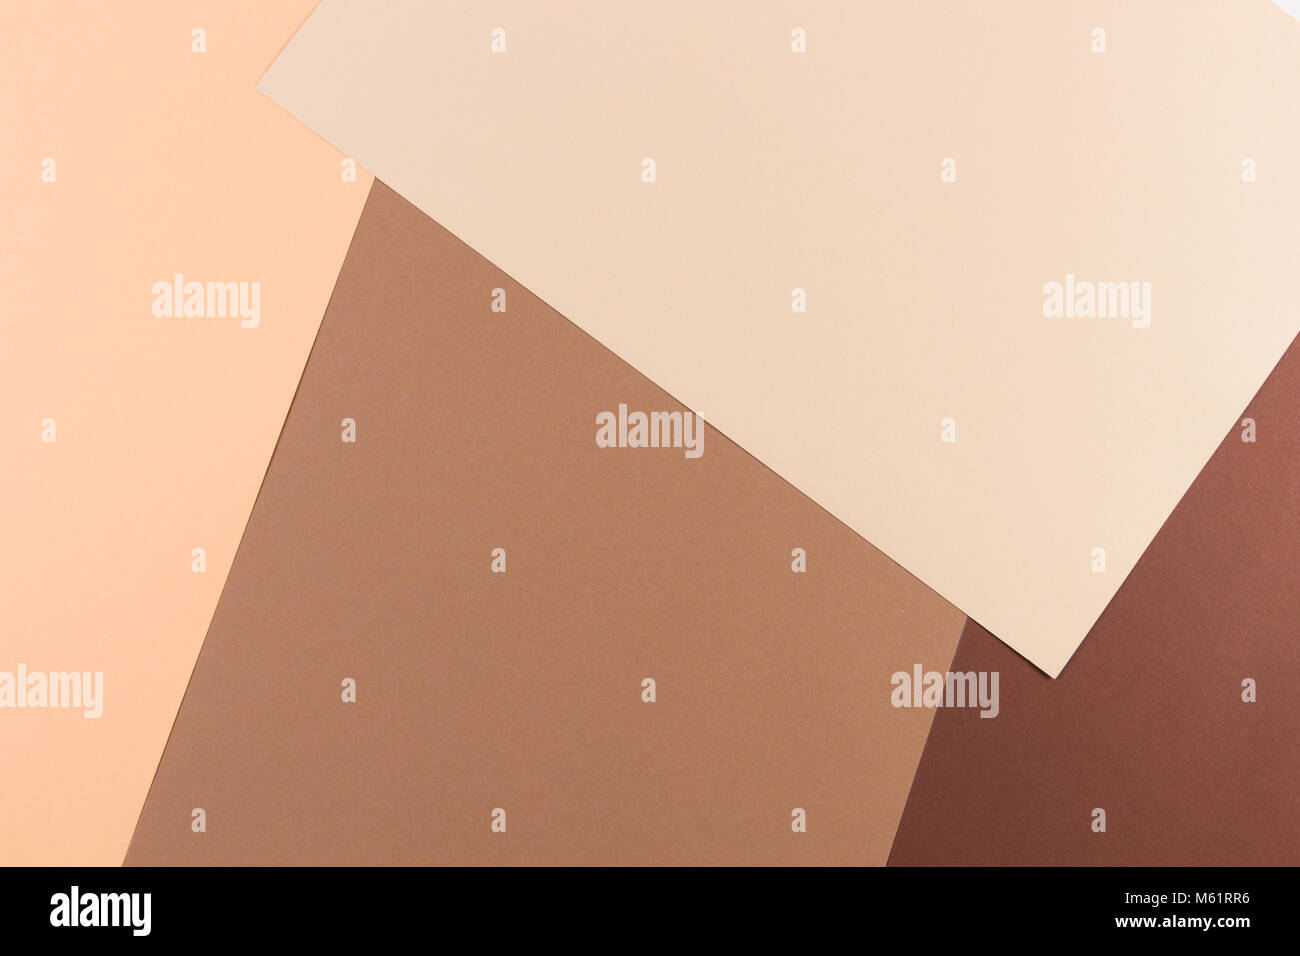 Color papers geometry composition background with pink, beige and brown tones. - Stock Image